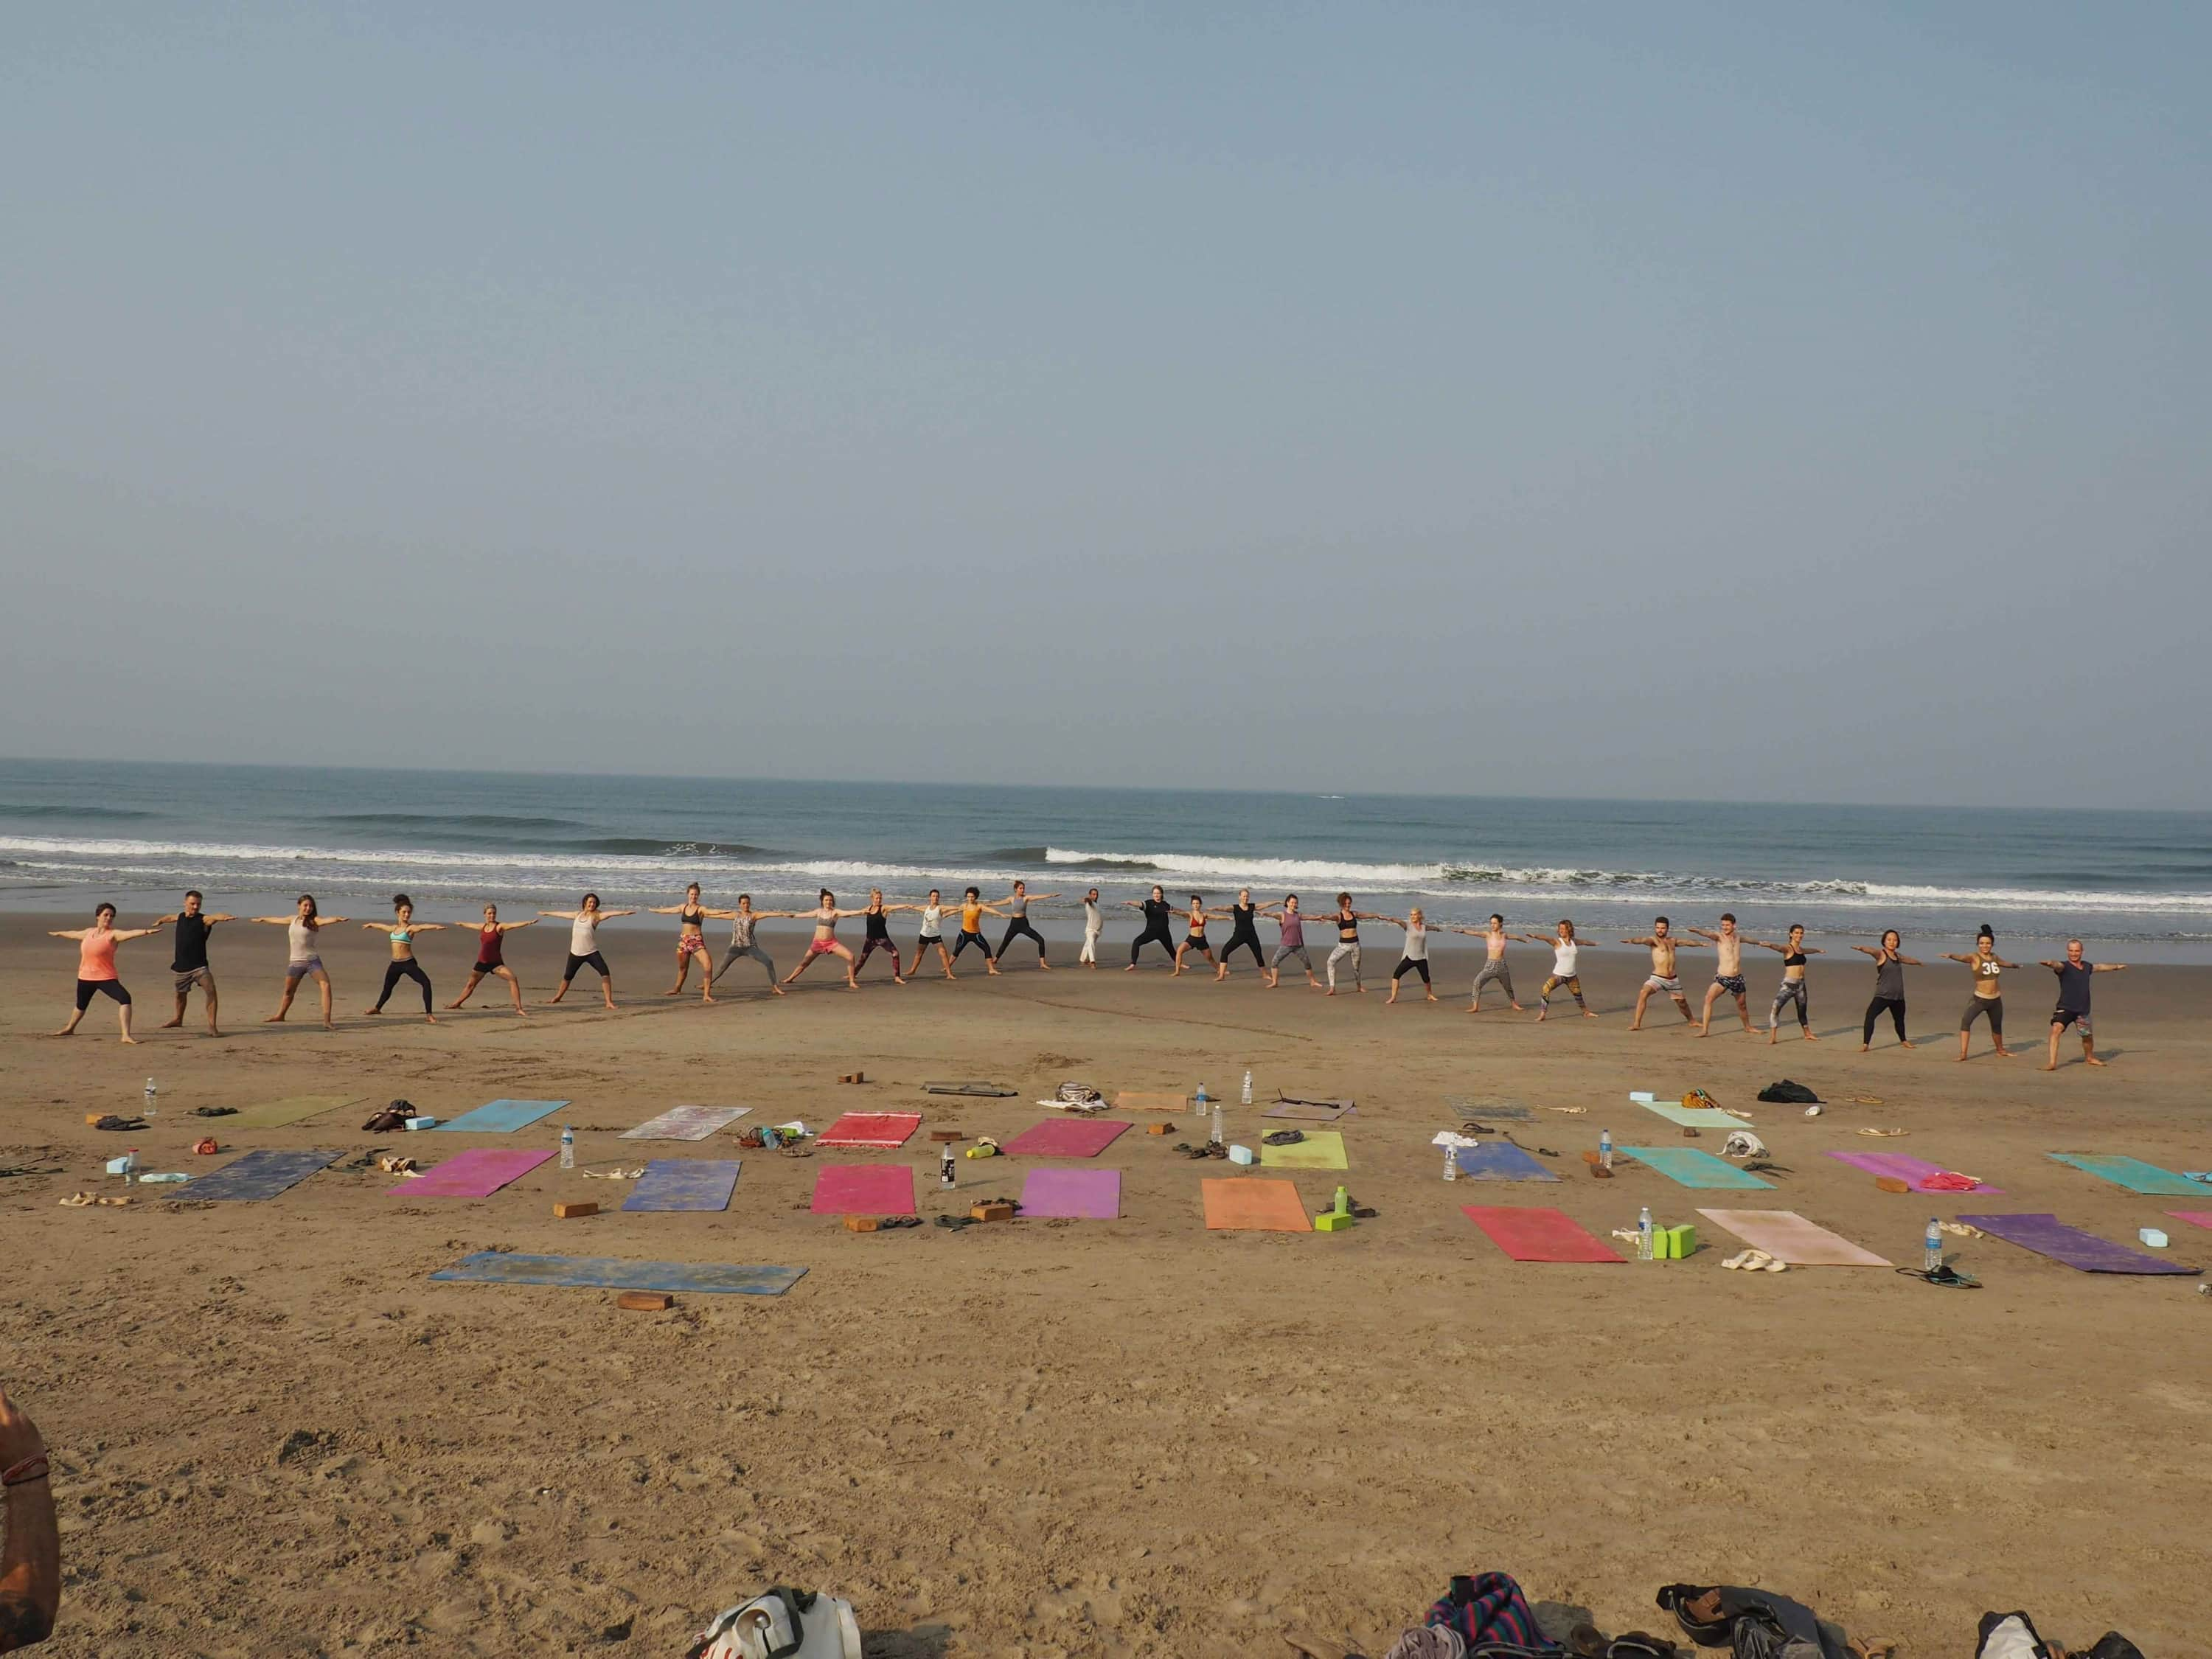 200 hrs ashtanga yoga teacher training at vishuddhi yoga school in goa, india31525947112.jpg